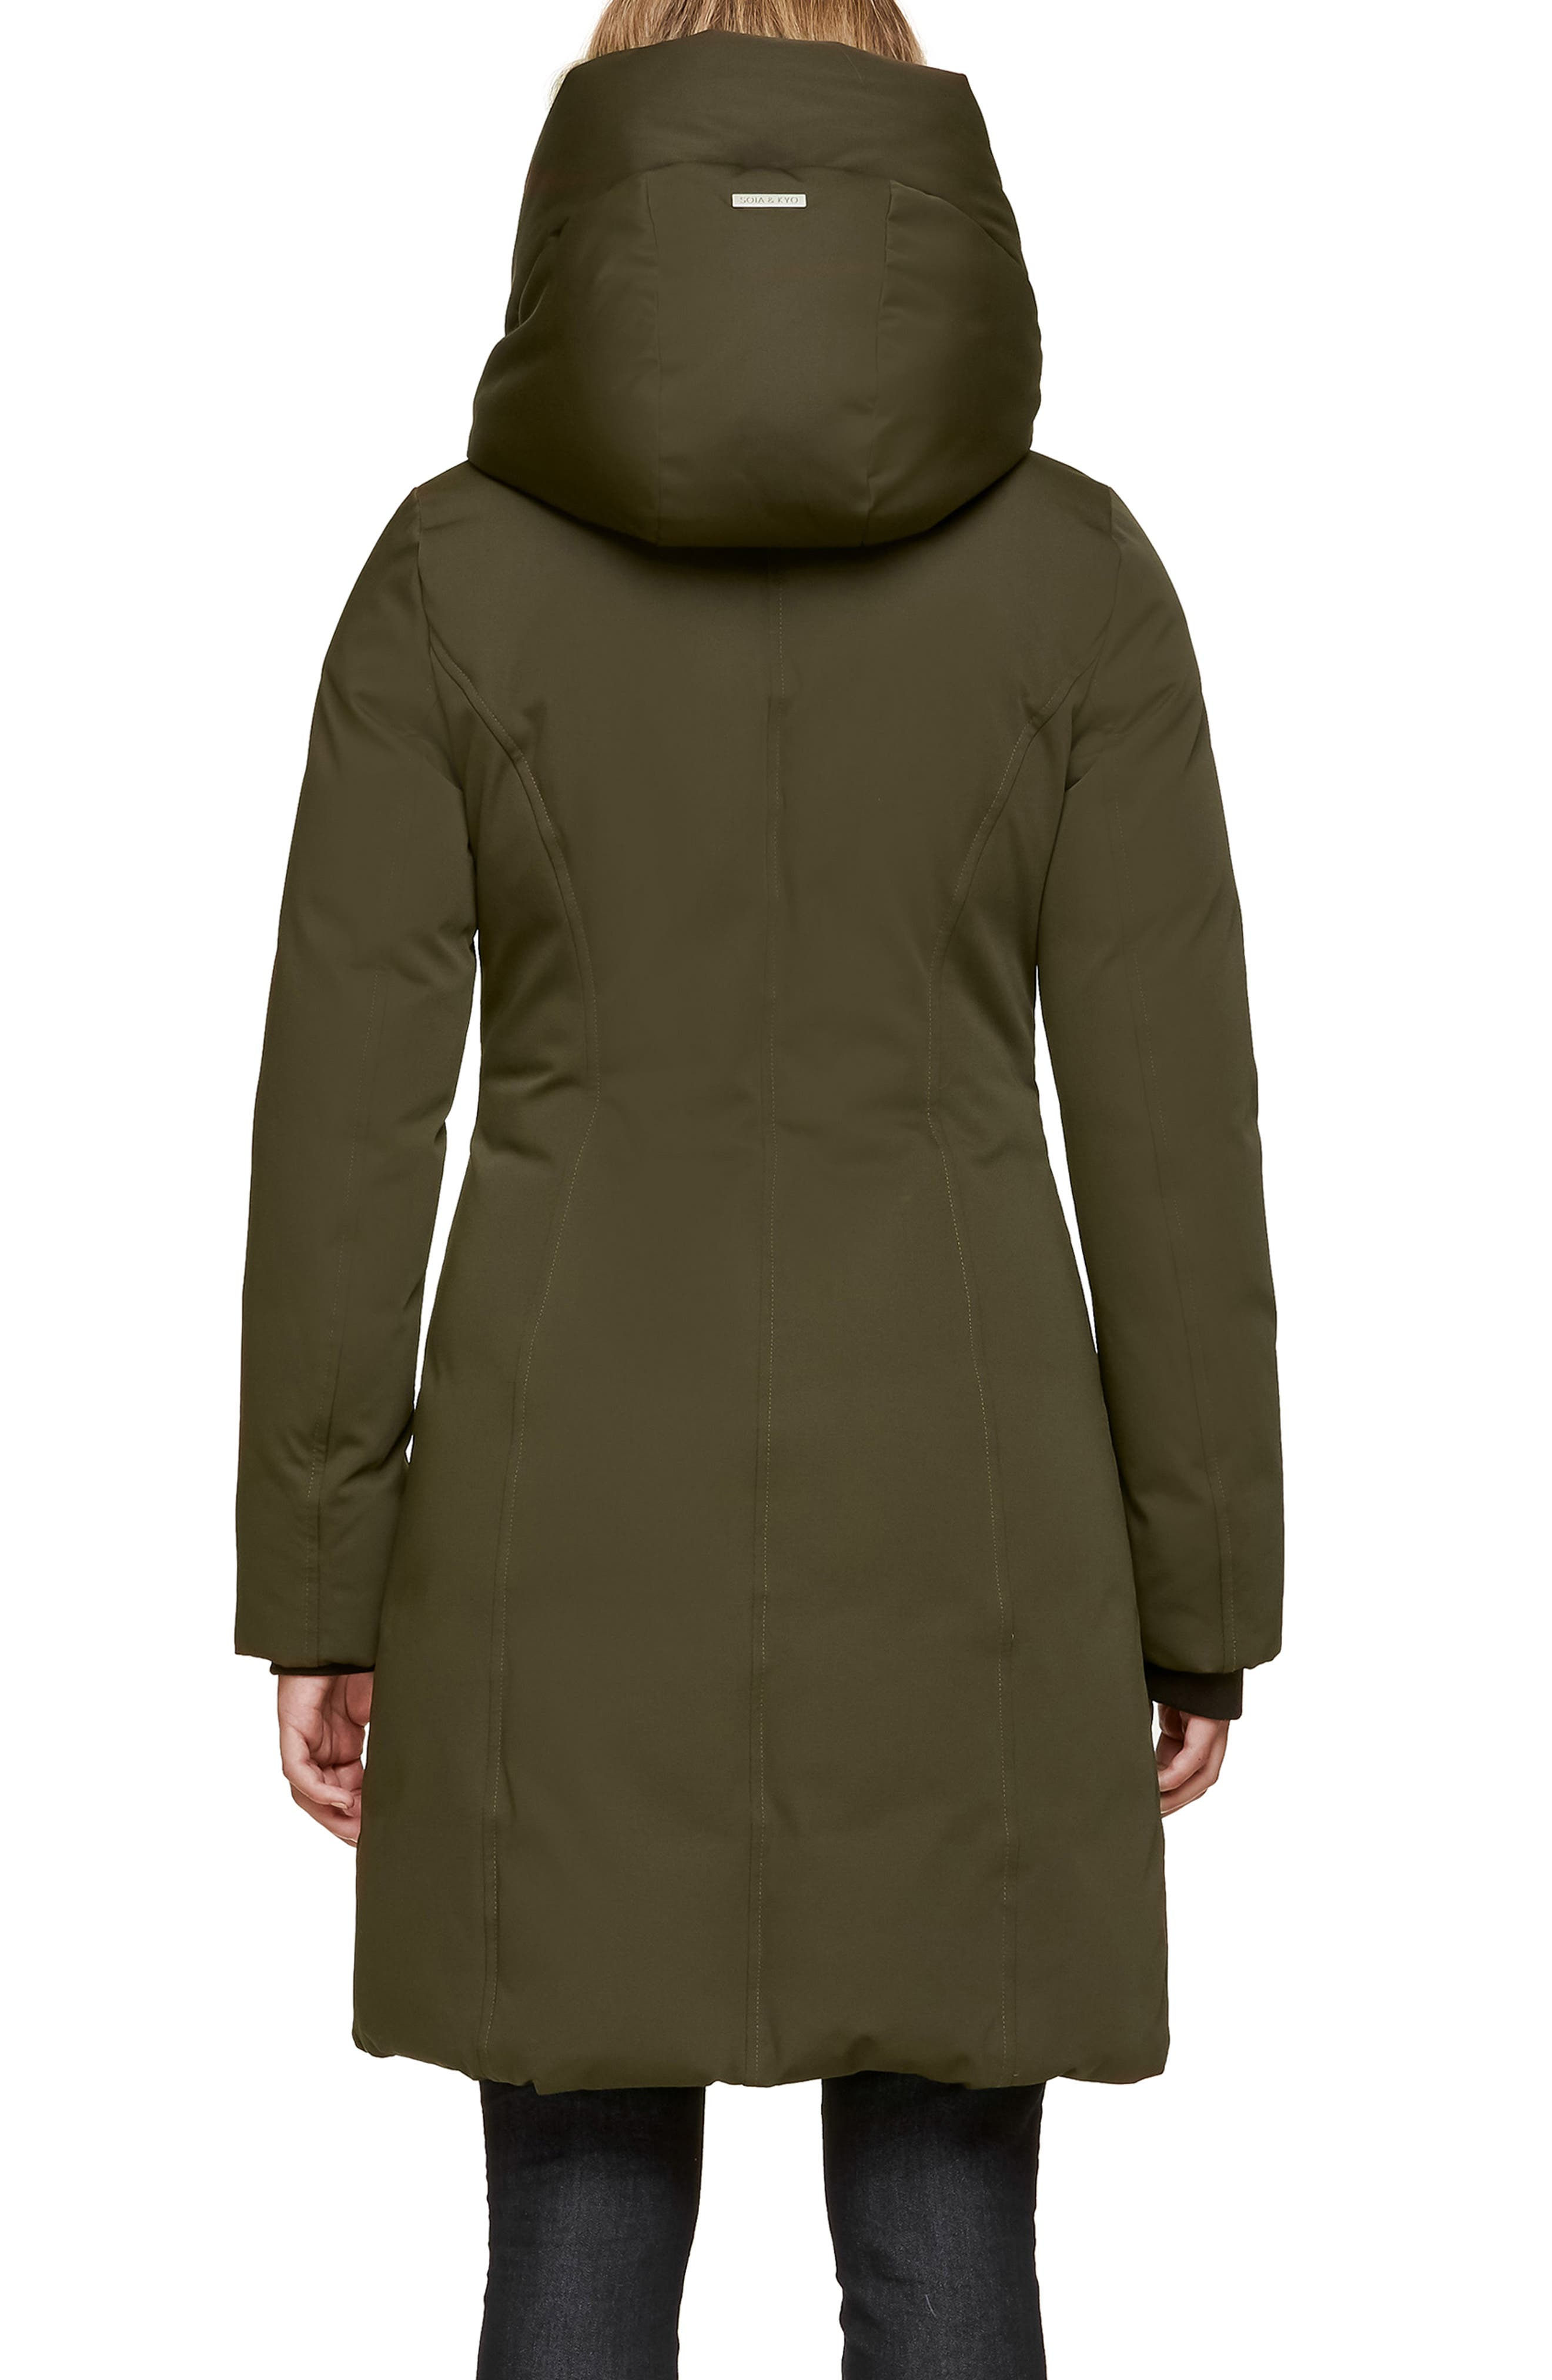 SOIA & KYO,                             Slim Fit Hooded Down Coat,                             Alternate thumbnail 2, color,                             ARMY